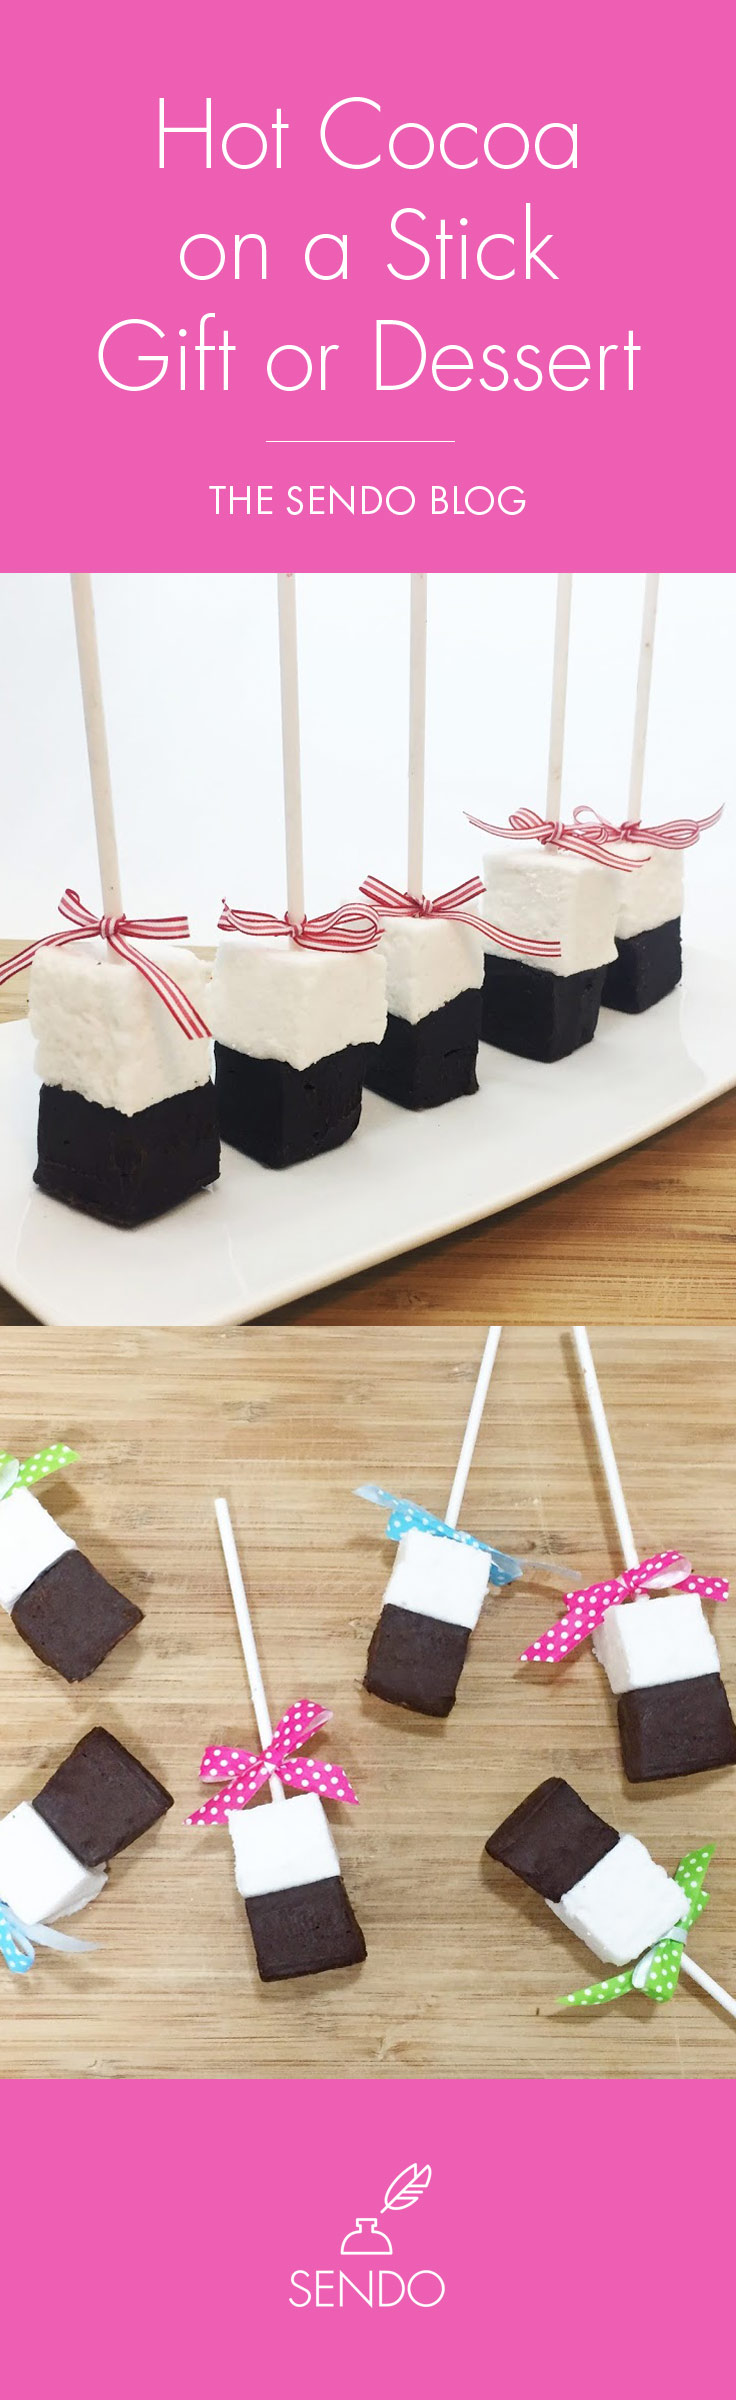 Easy Hot Cocoa on a Stick - Great for gifts and parties!